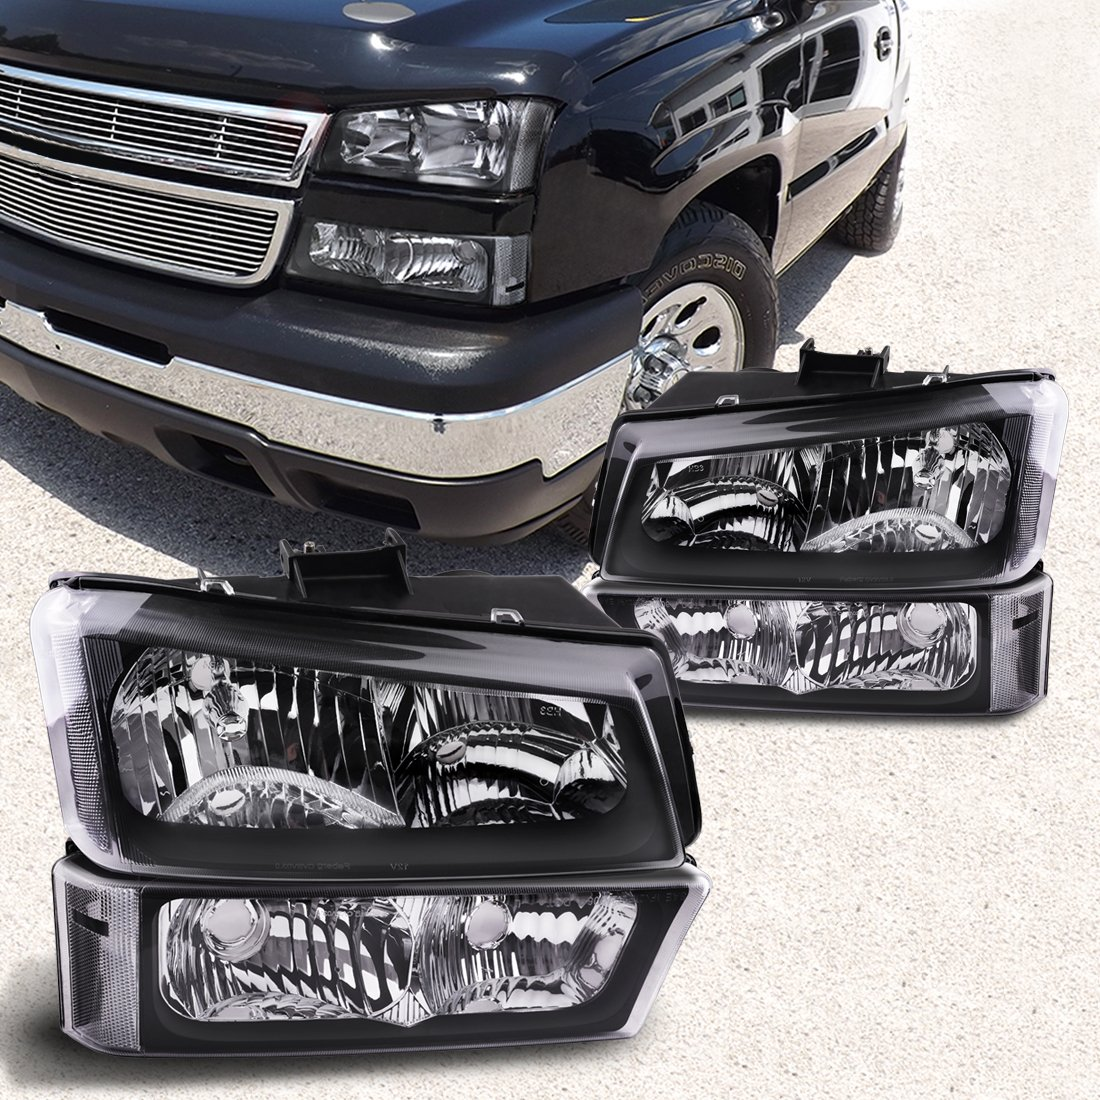 All Chevy 95 chevy headlights : Amazon.com: Headlight Assembly kit for 03 04 05 06 Chevy Avalanche ...